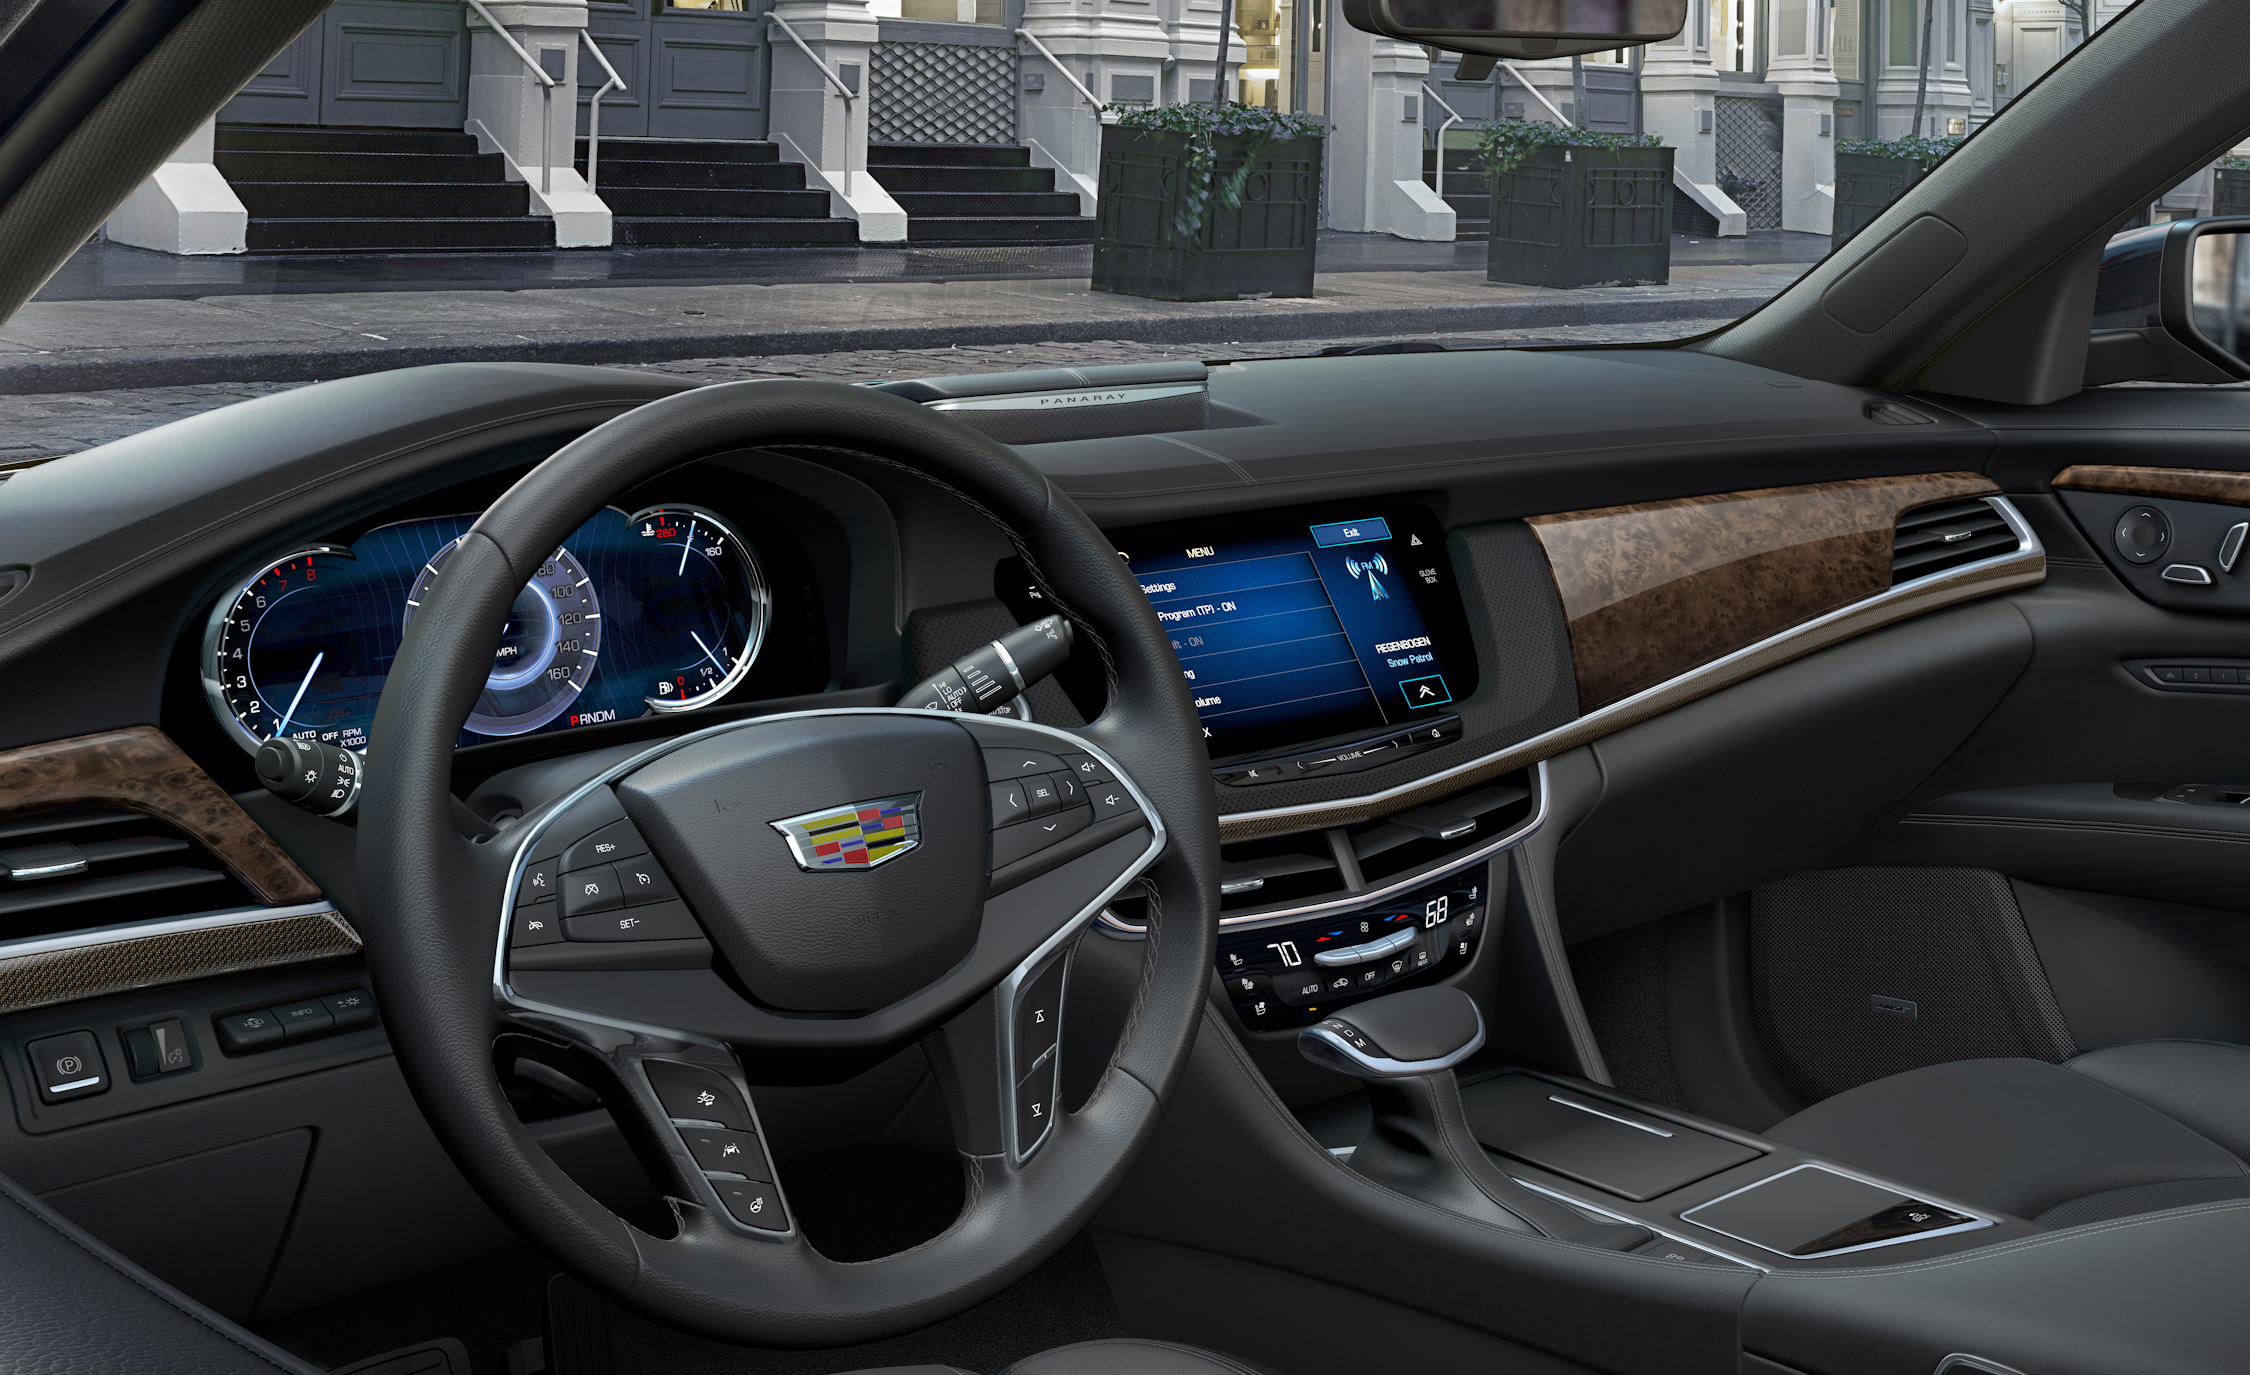 Oil Reset » Blog Archive » Reset the 2016 Cadillac CT6 Oil Life After an Oil Change